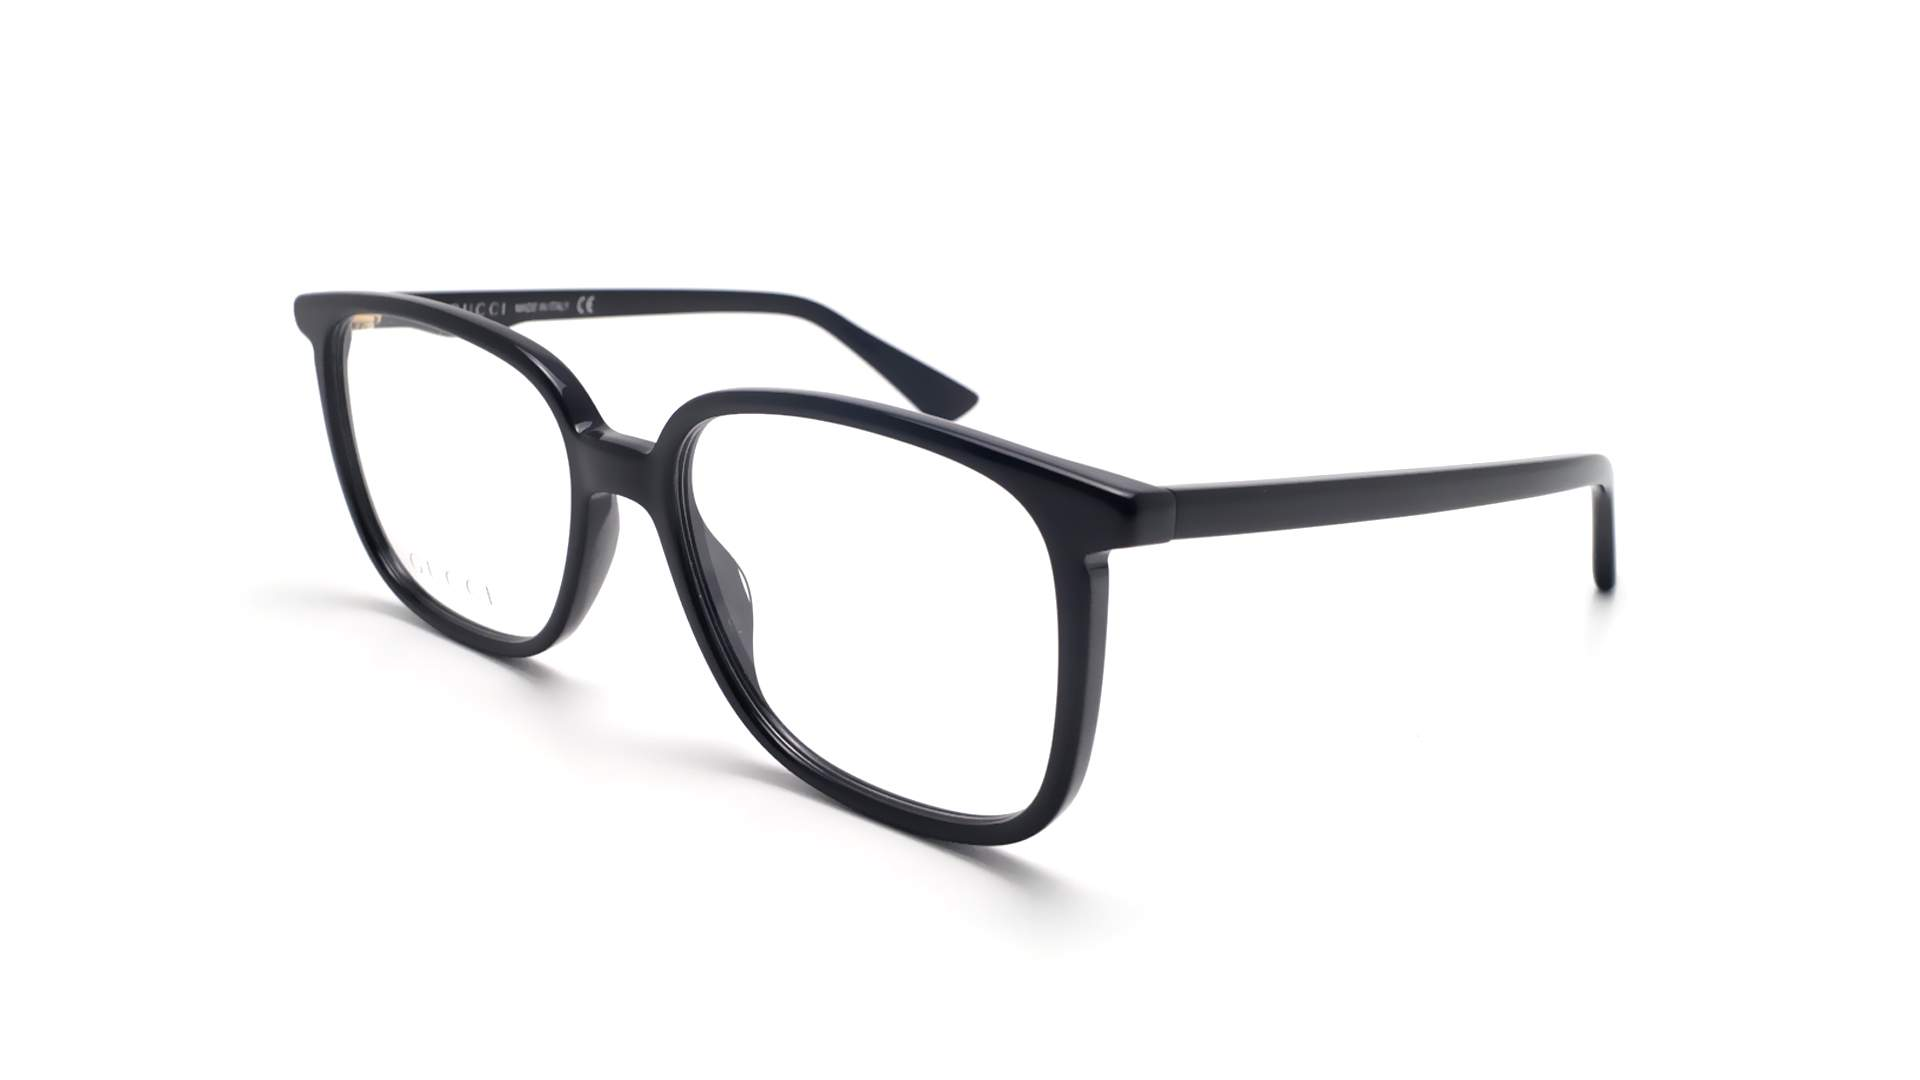 d26e3ea6b9d Eyeglasses Gucci GG0260O 001 53-17 Black Medium